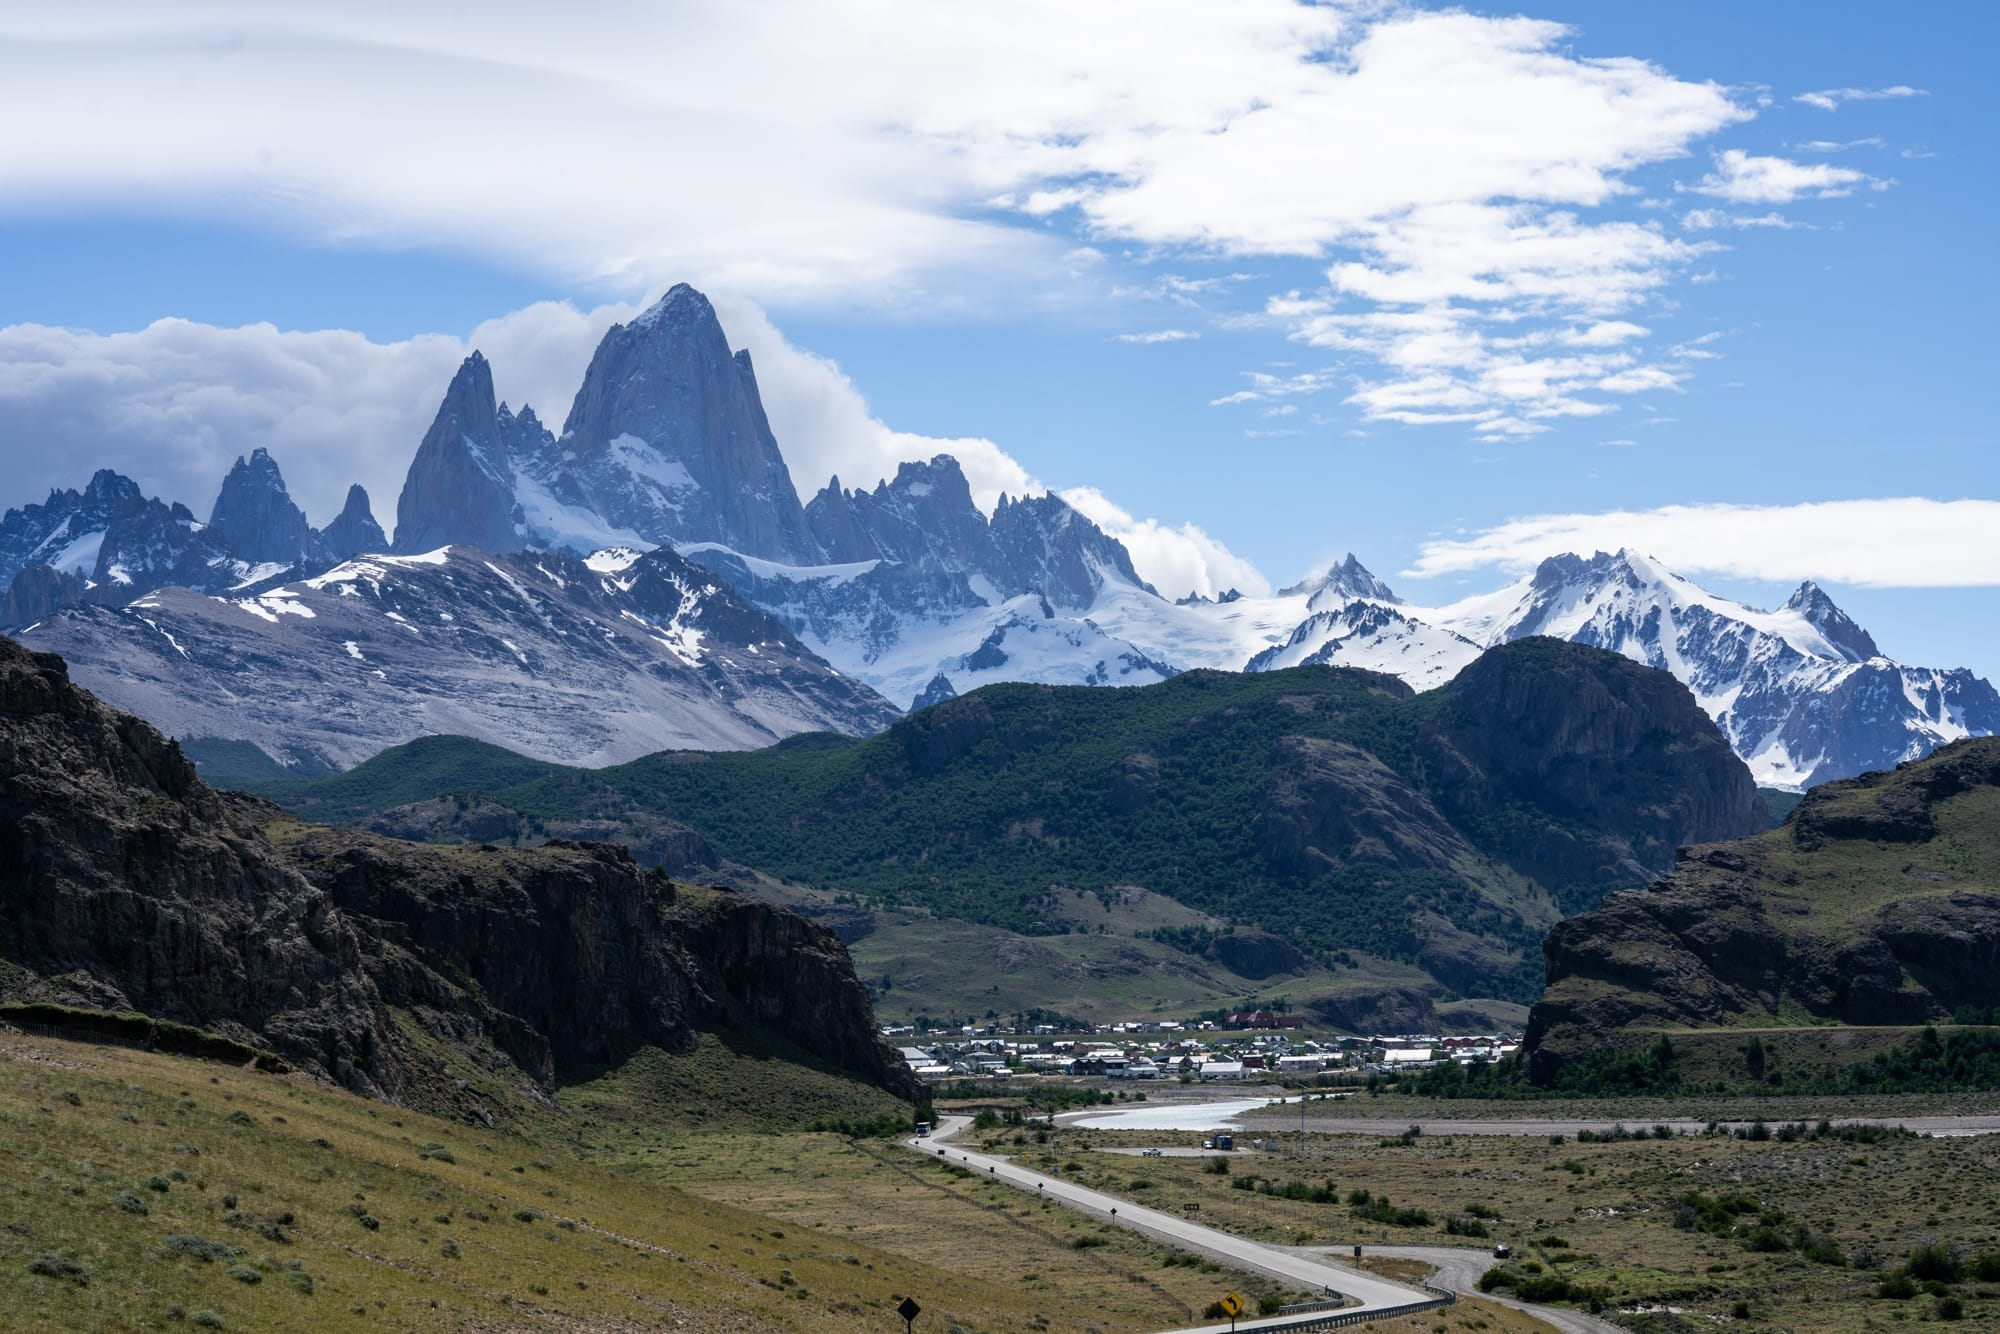 4-day El Chaltén Itinerary for Adventure Travelers